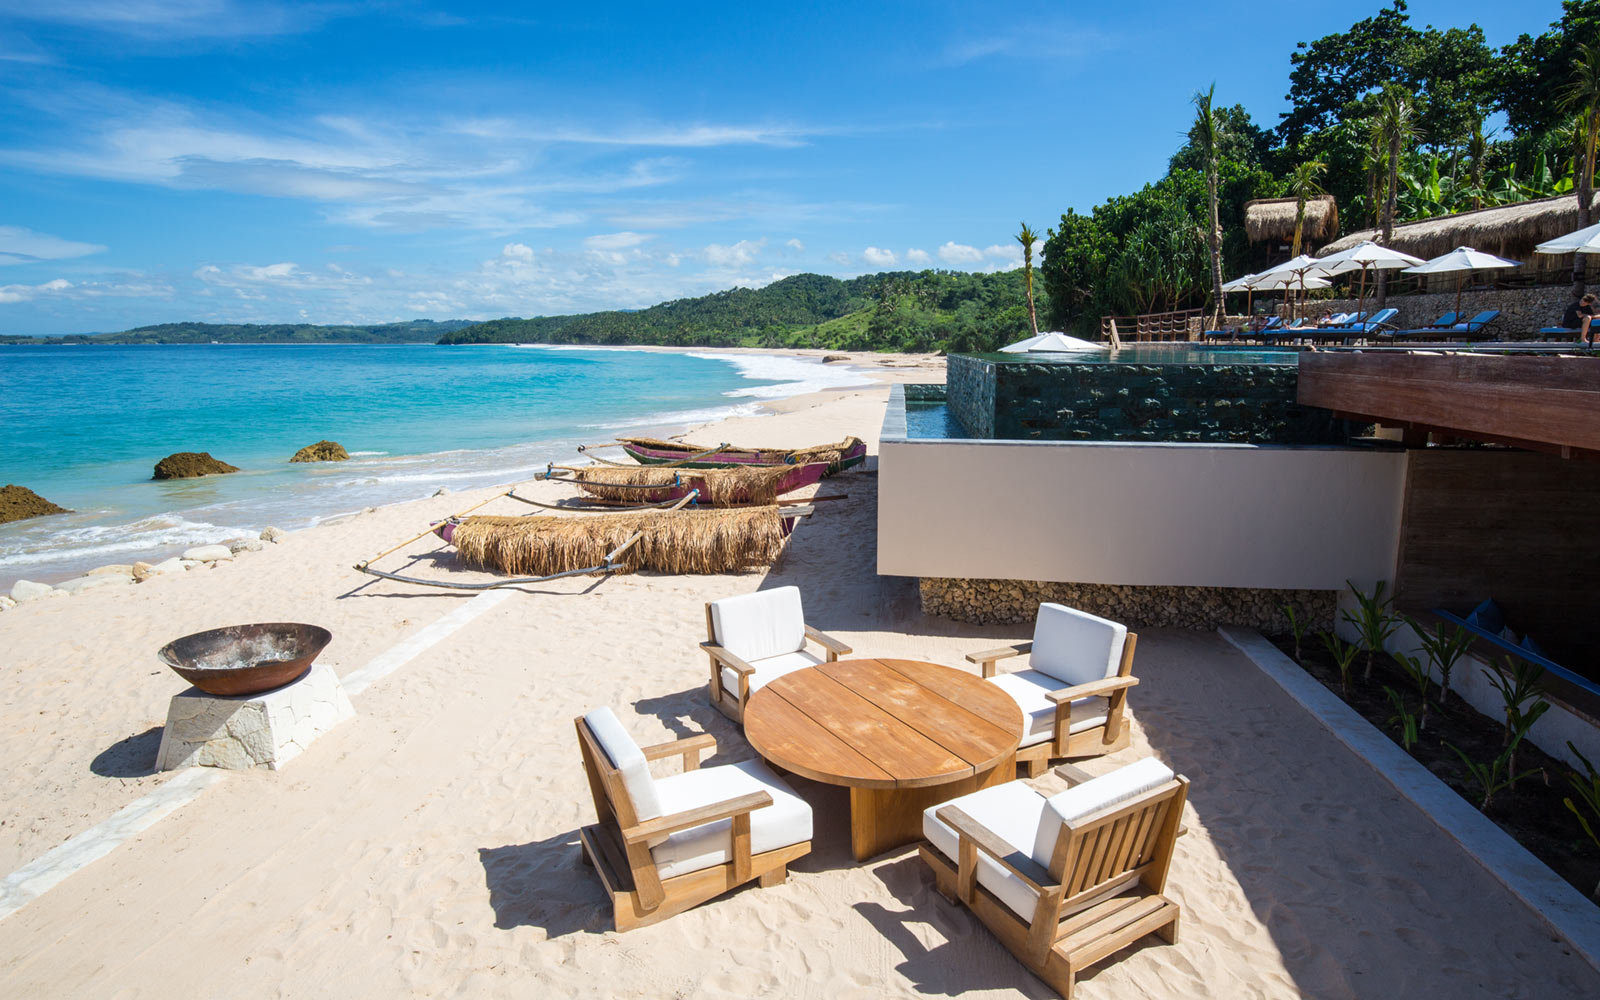 Table and Chairs on Beach, Nihiwatu, Sumba, Indonesia